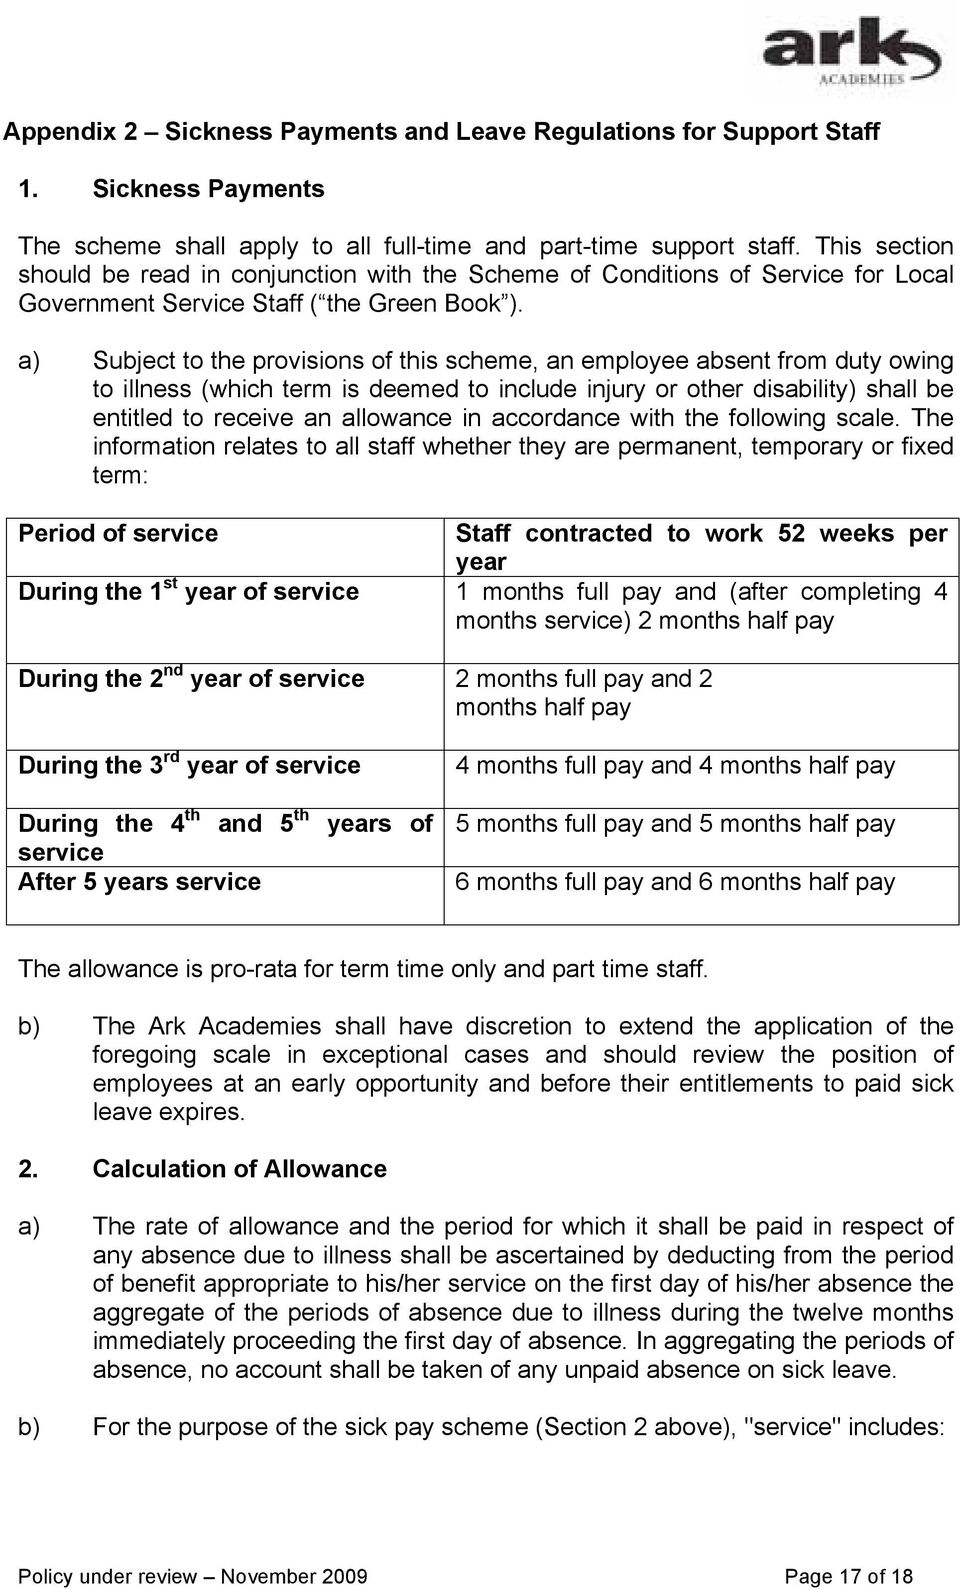 a) Subject to the provisions of this scheme, an employee absent from duty owing to illness (which term is deemed to include injury or other disability) shall be entitled to receive an allowance in